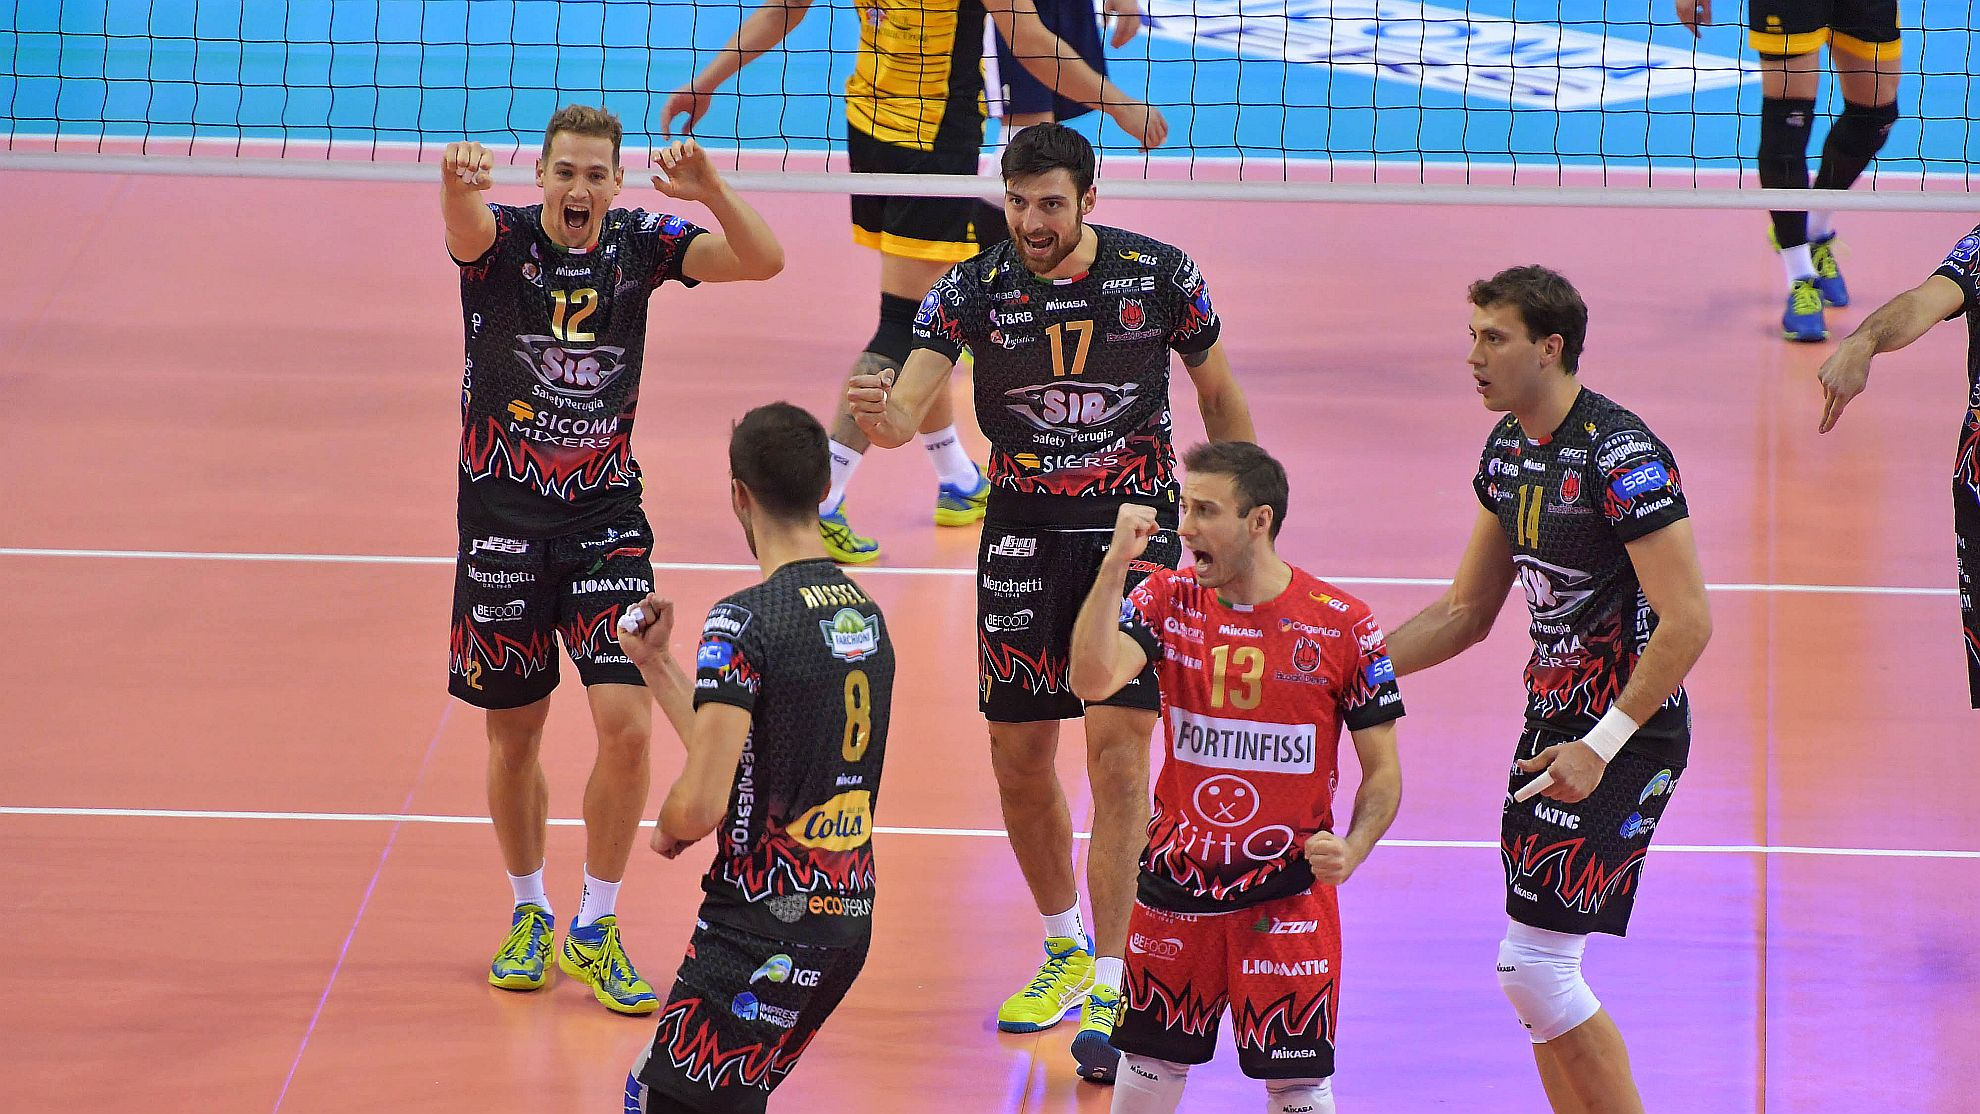 Sir Safety Conad Perugia 2018 - FOTO © CEV